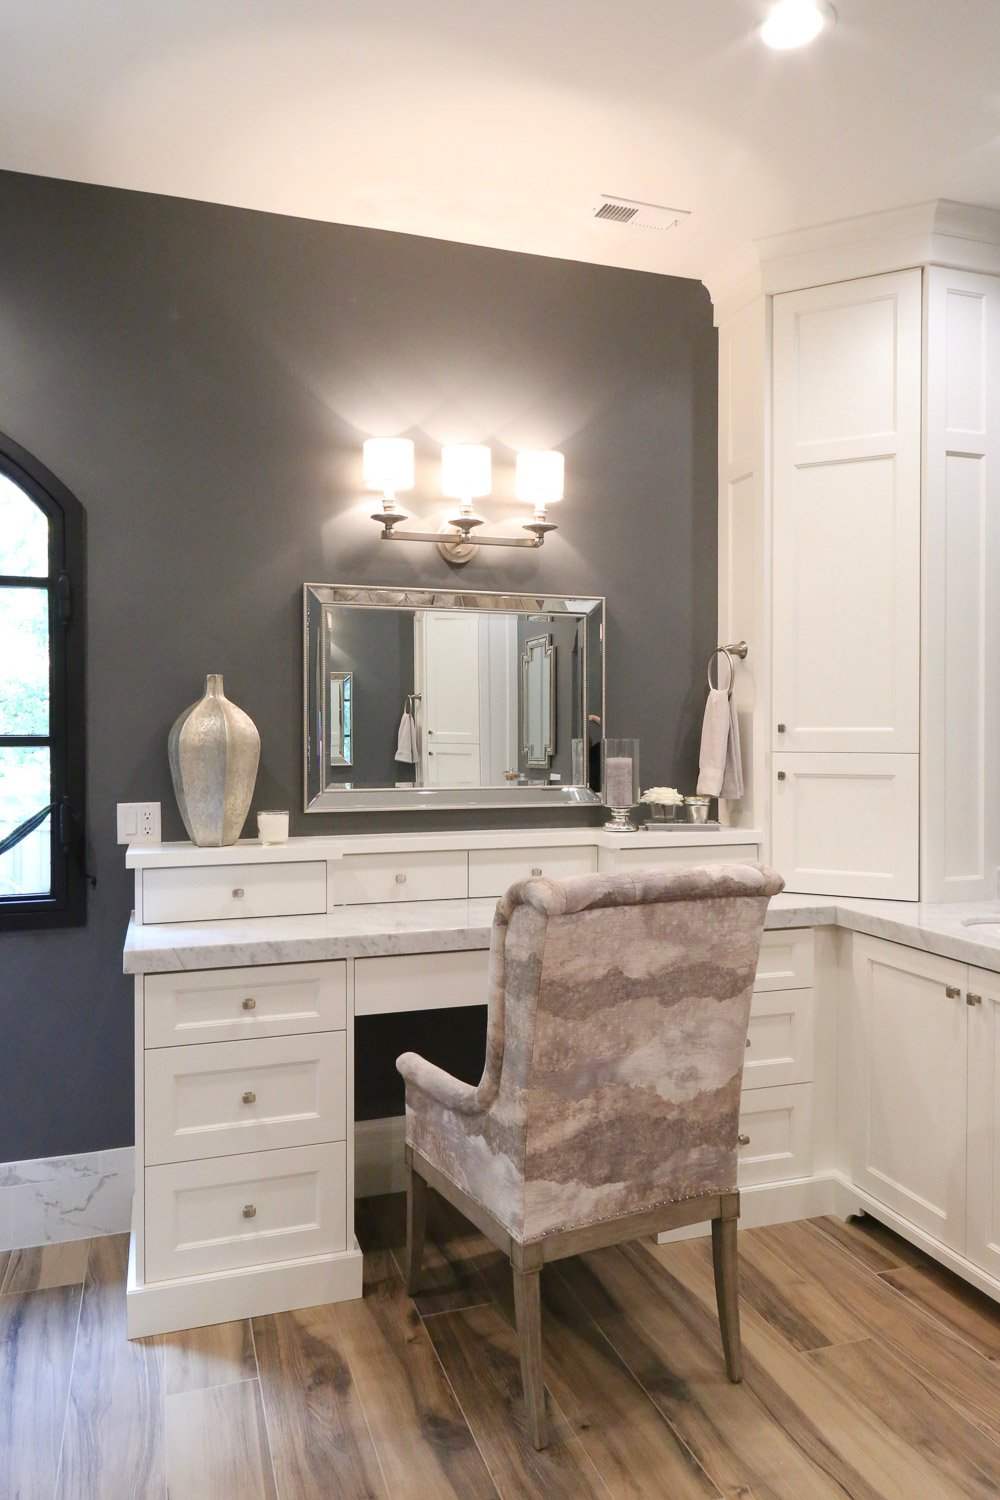 Paint color is Benjamin Moore Trout Gray